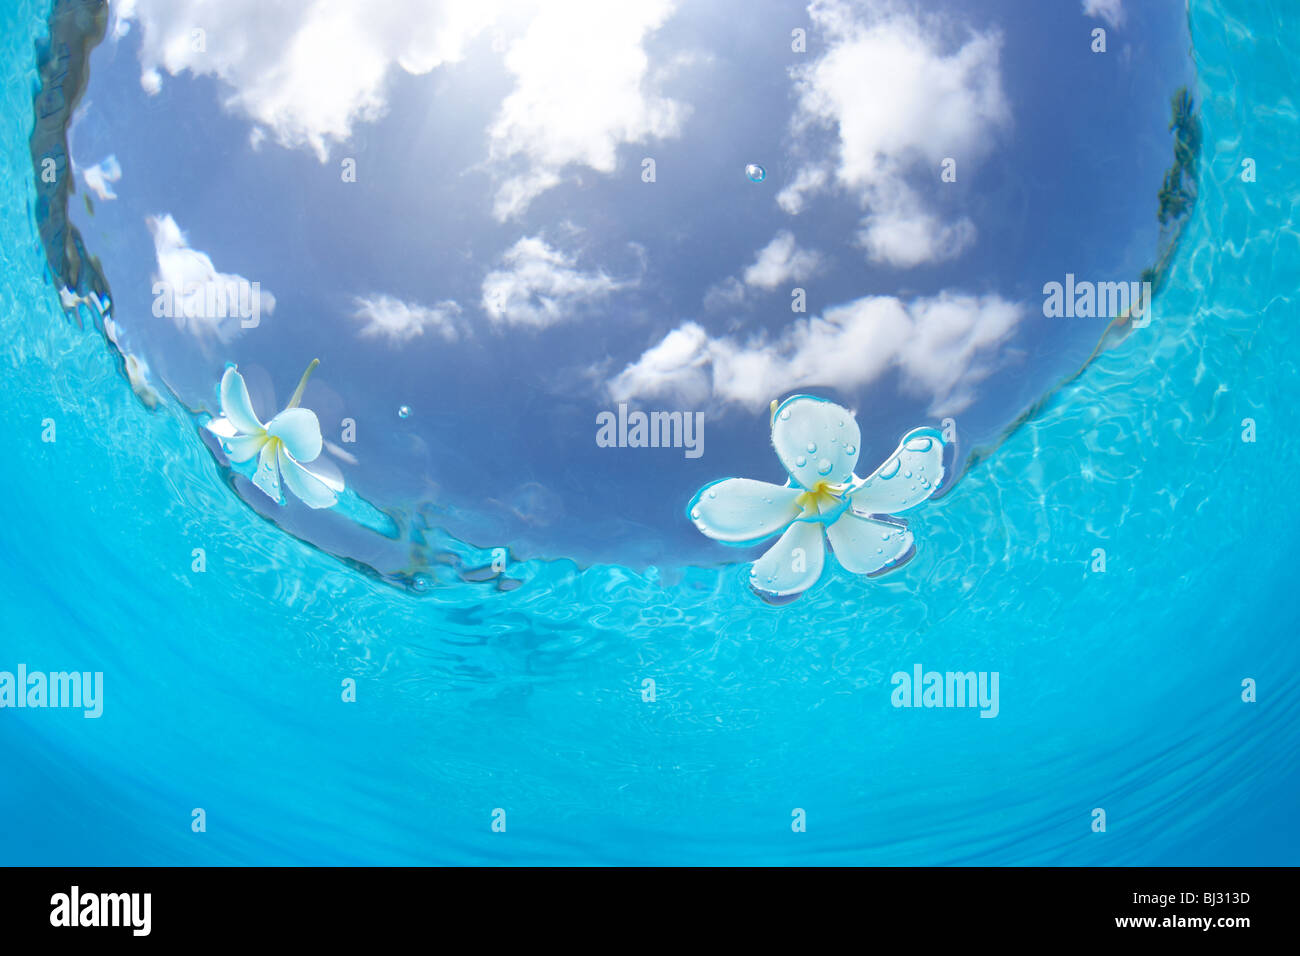 plumerias floating on the water - Stock Image